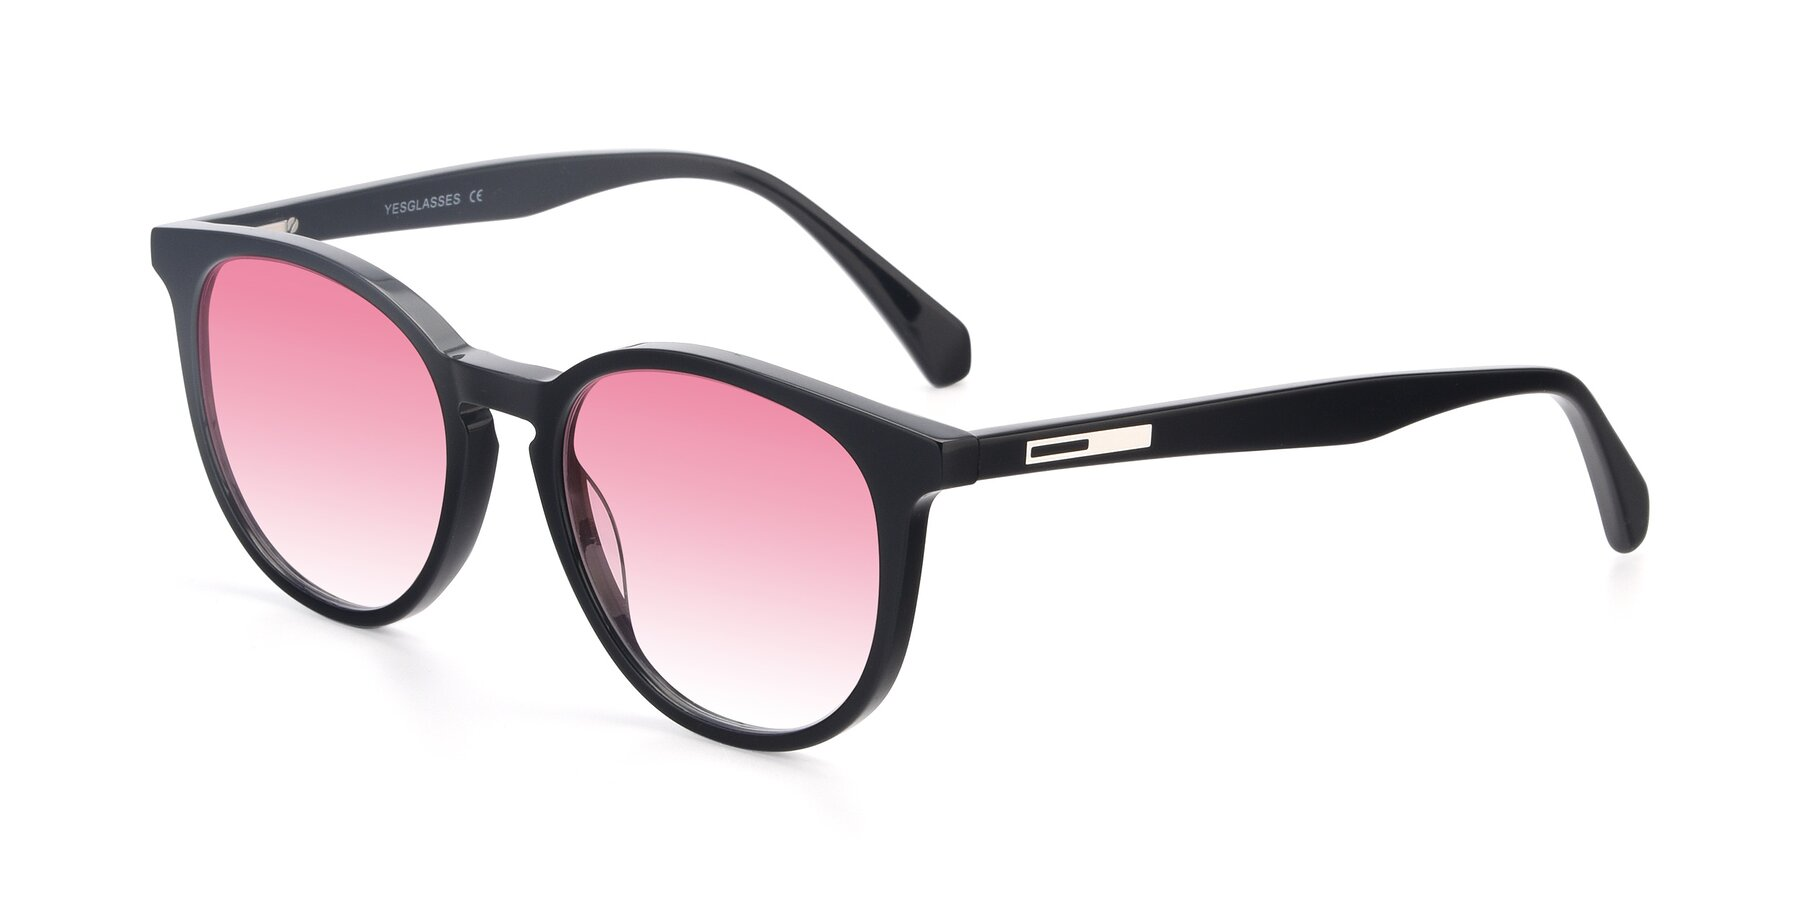 Angle of 17721 in Black with Pink Gradient Lenses